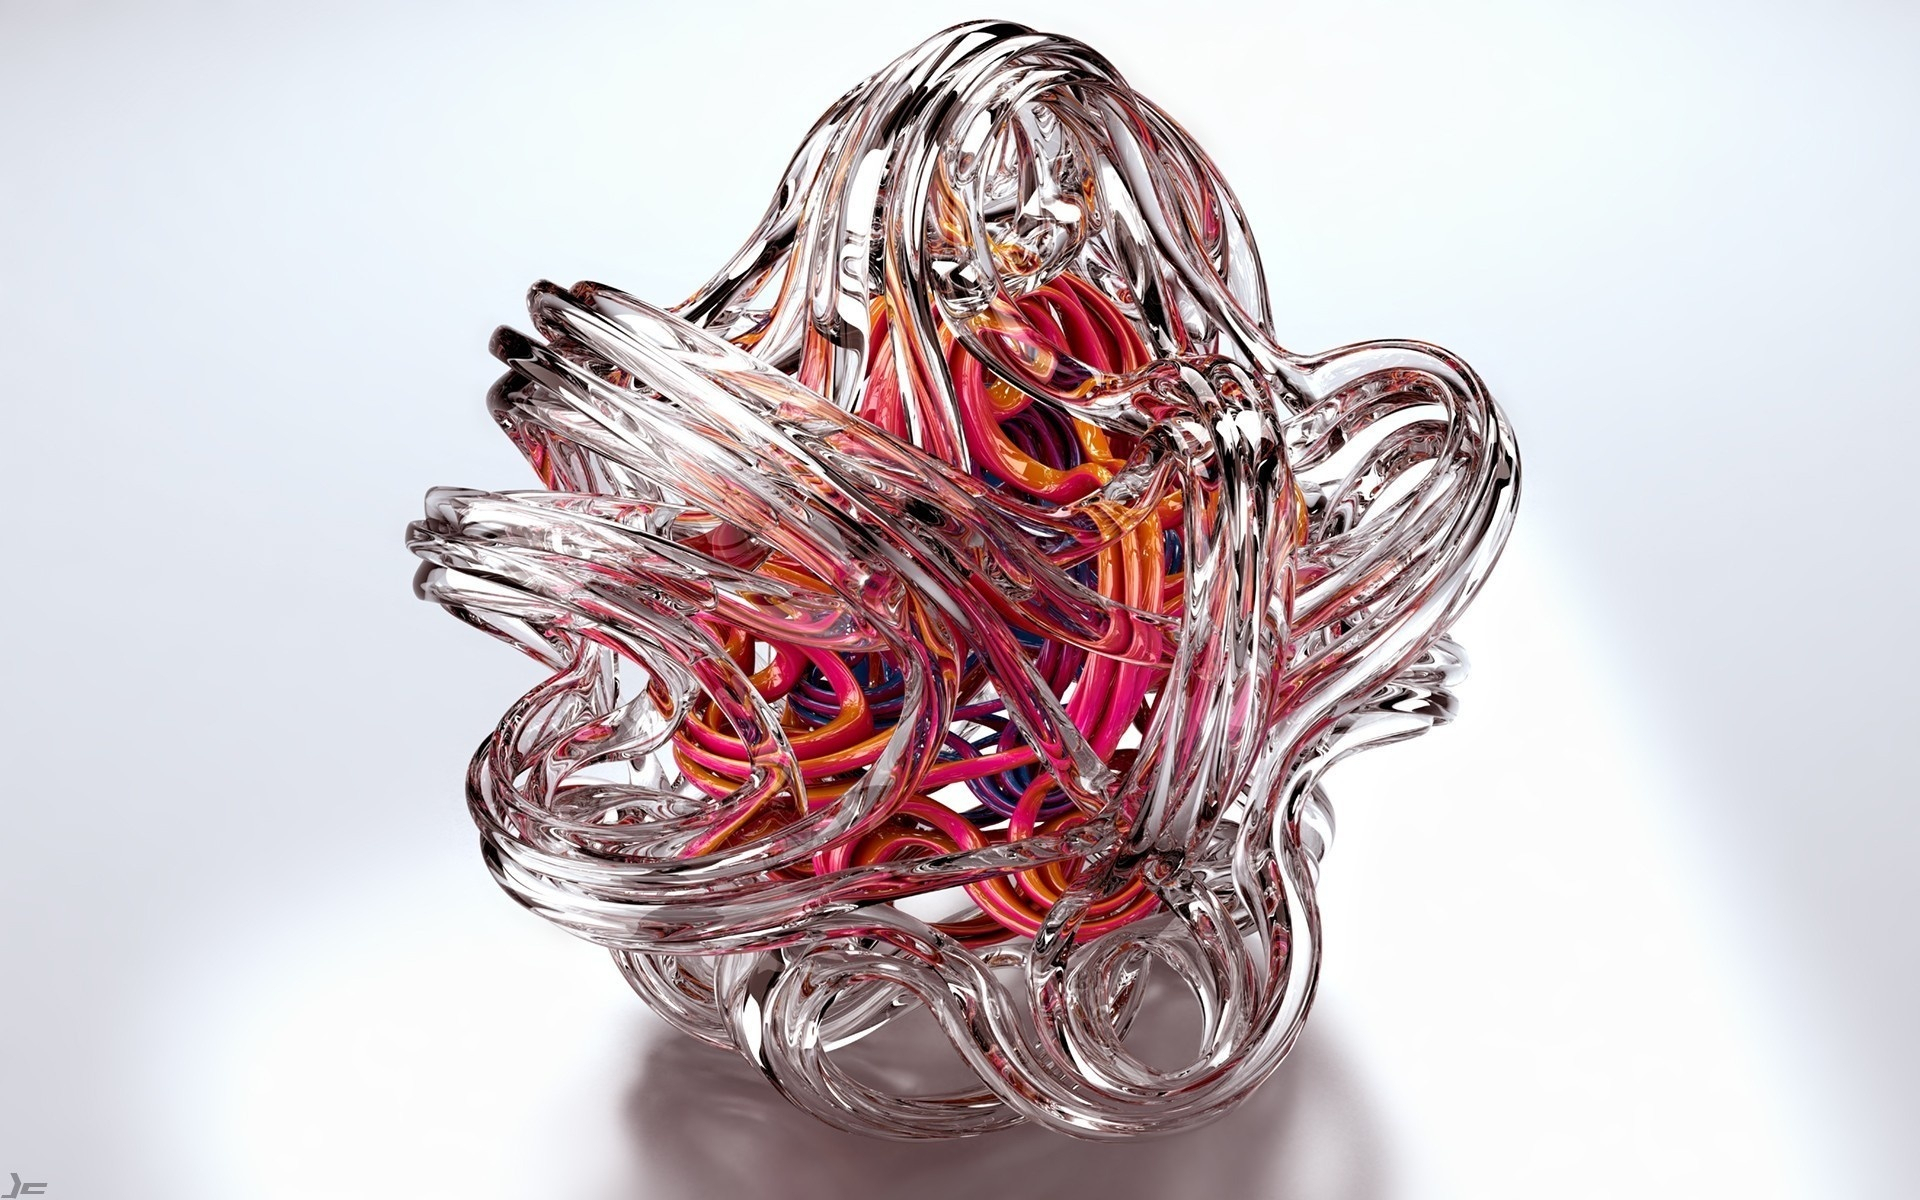 Image: Ball, glass, shape, curves, color